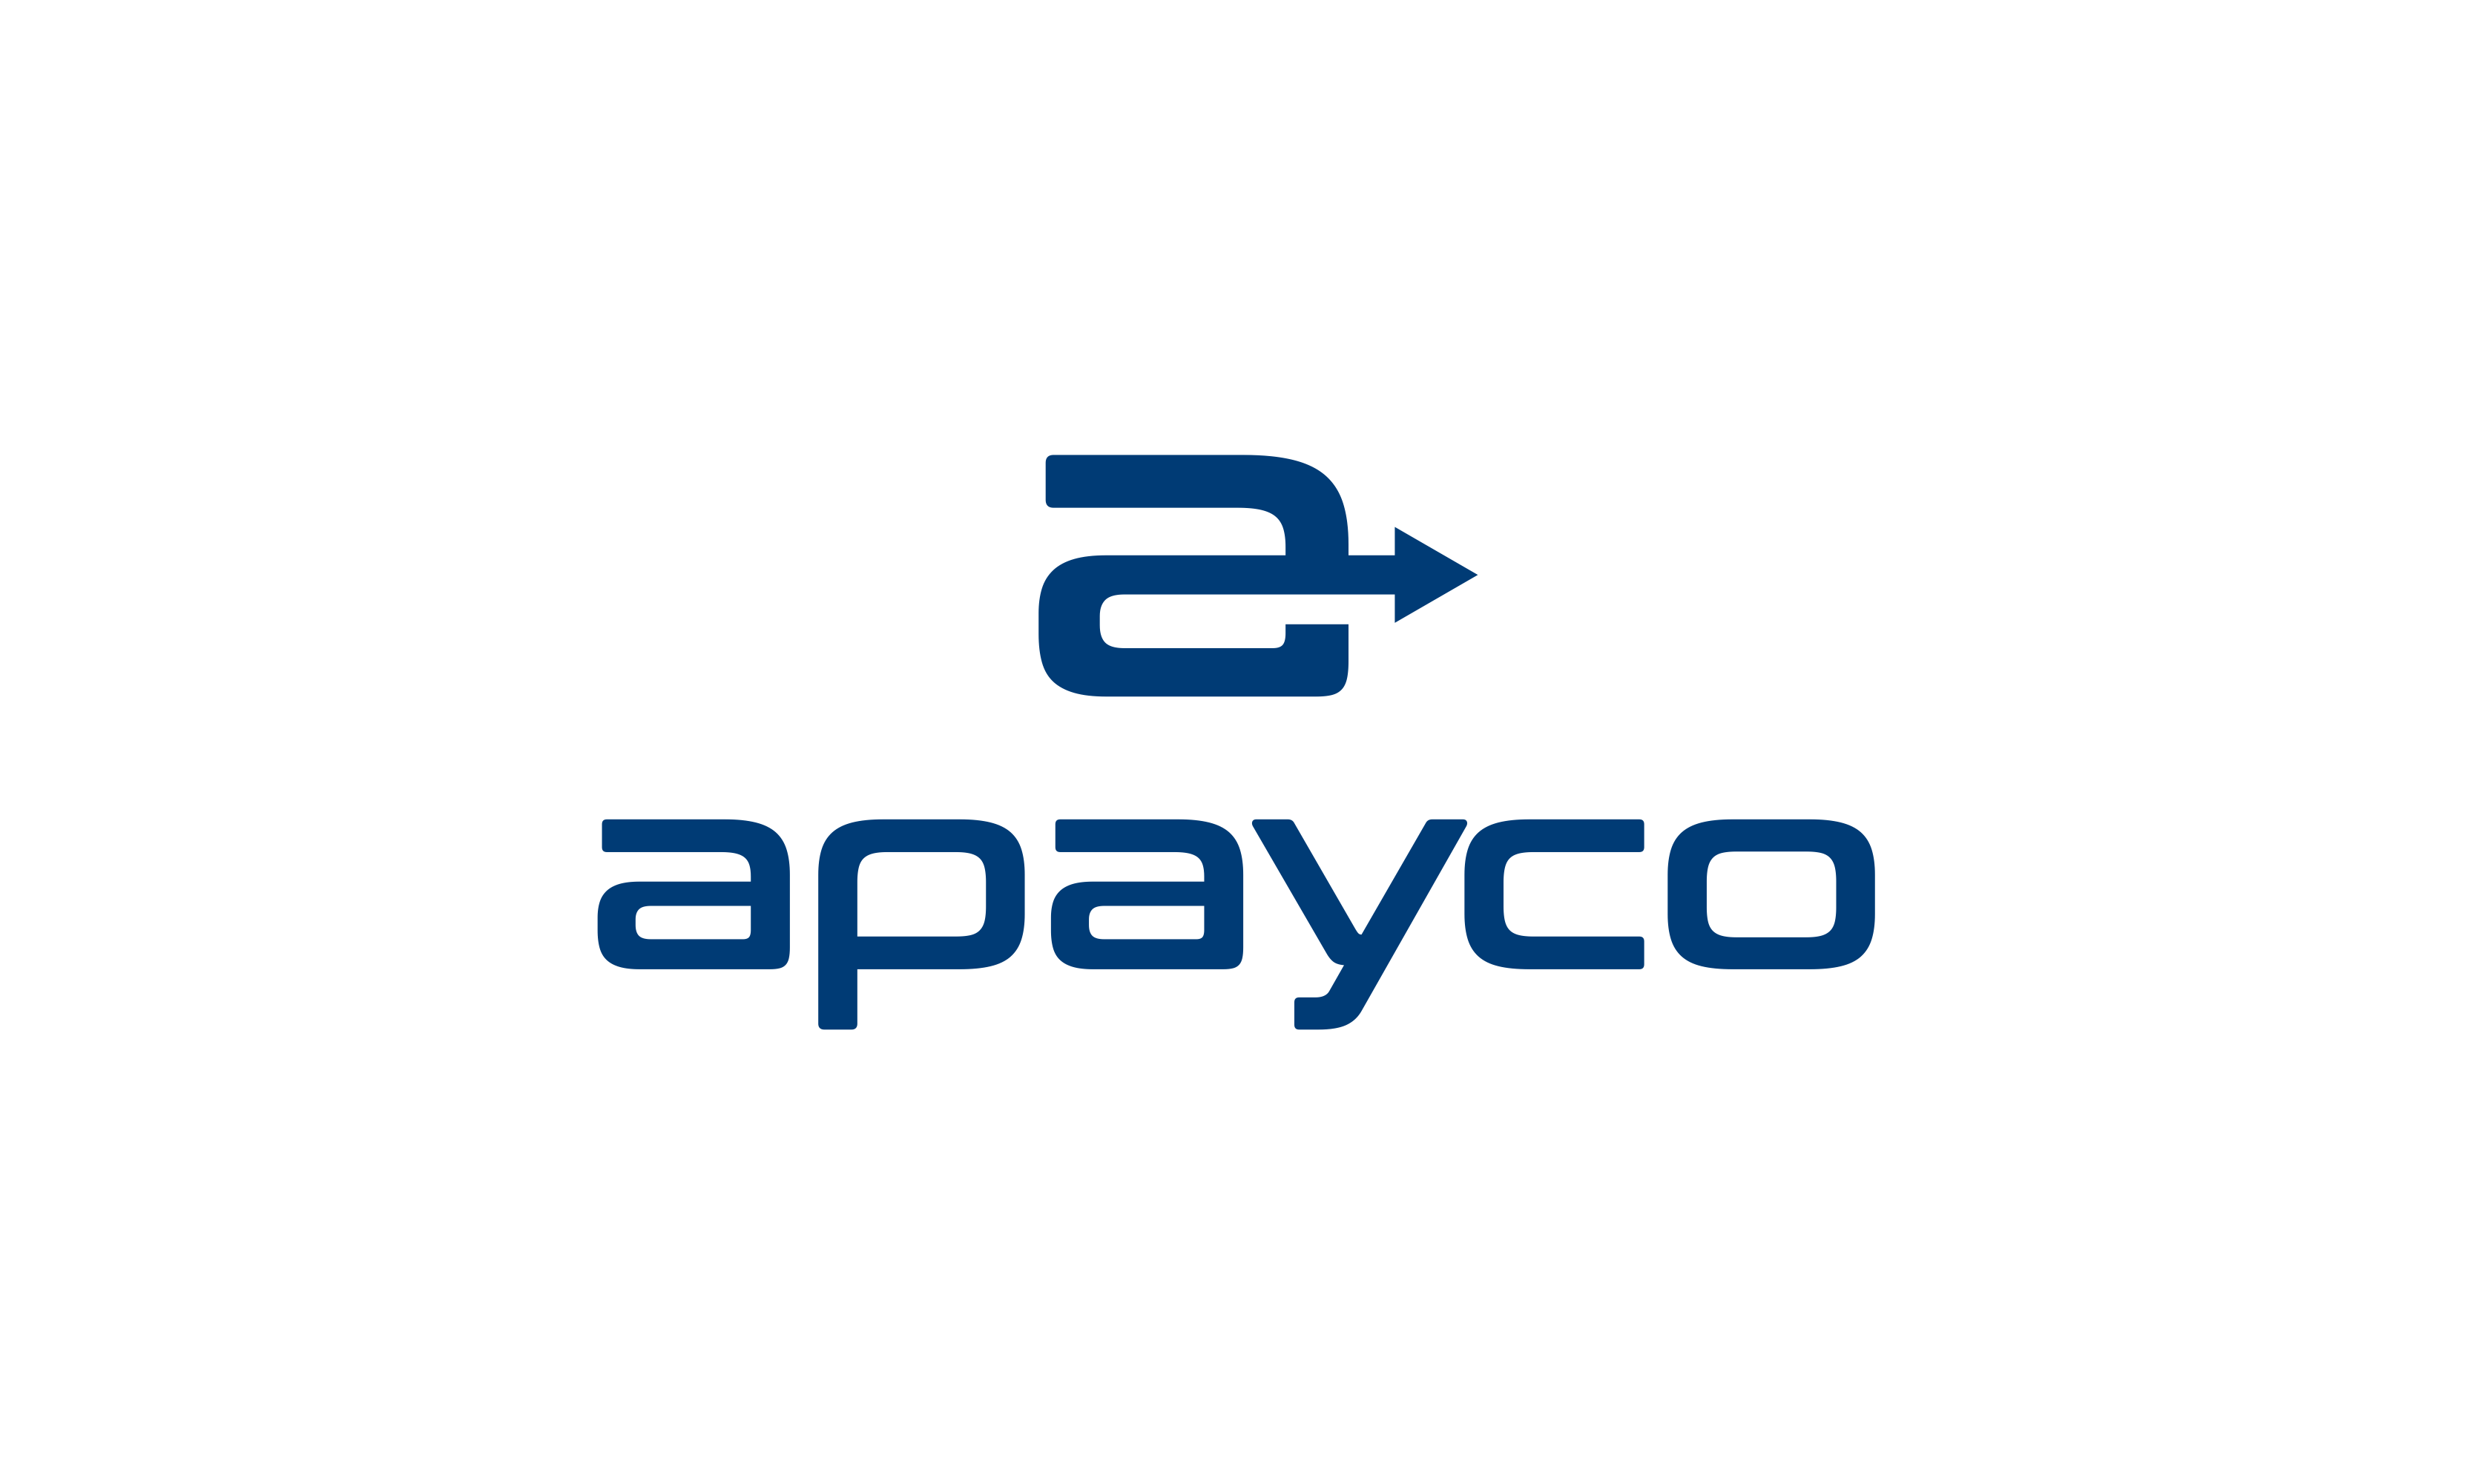 Apayco - Possible company name for sale